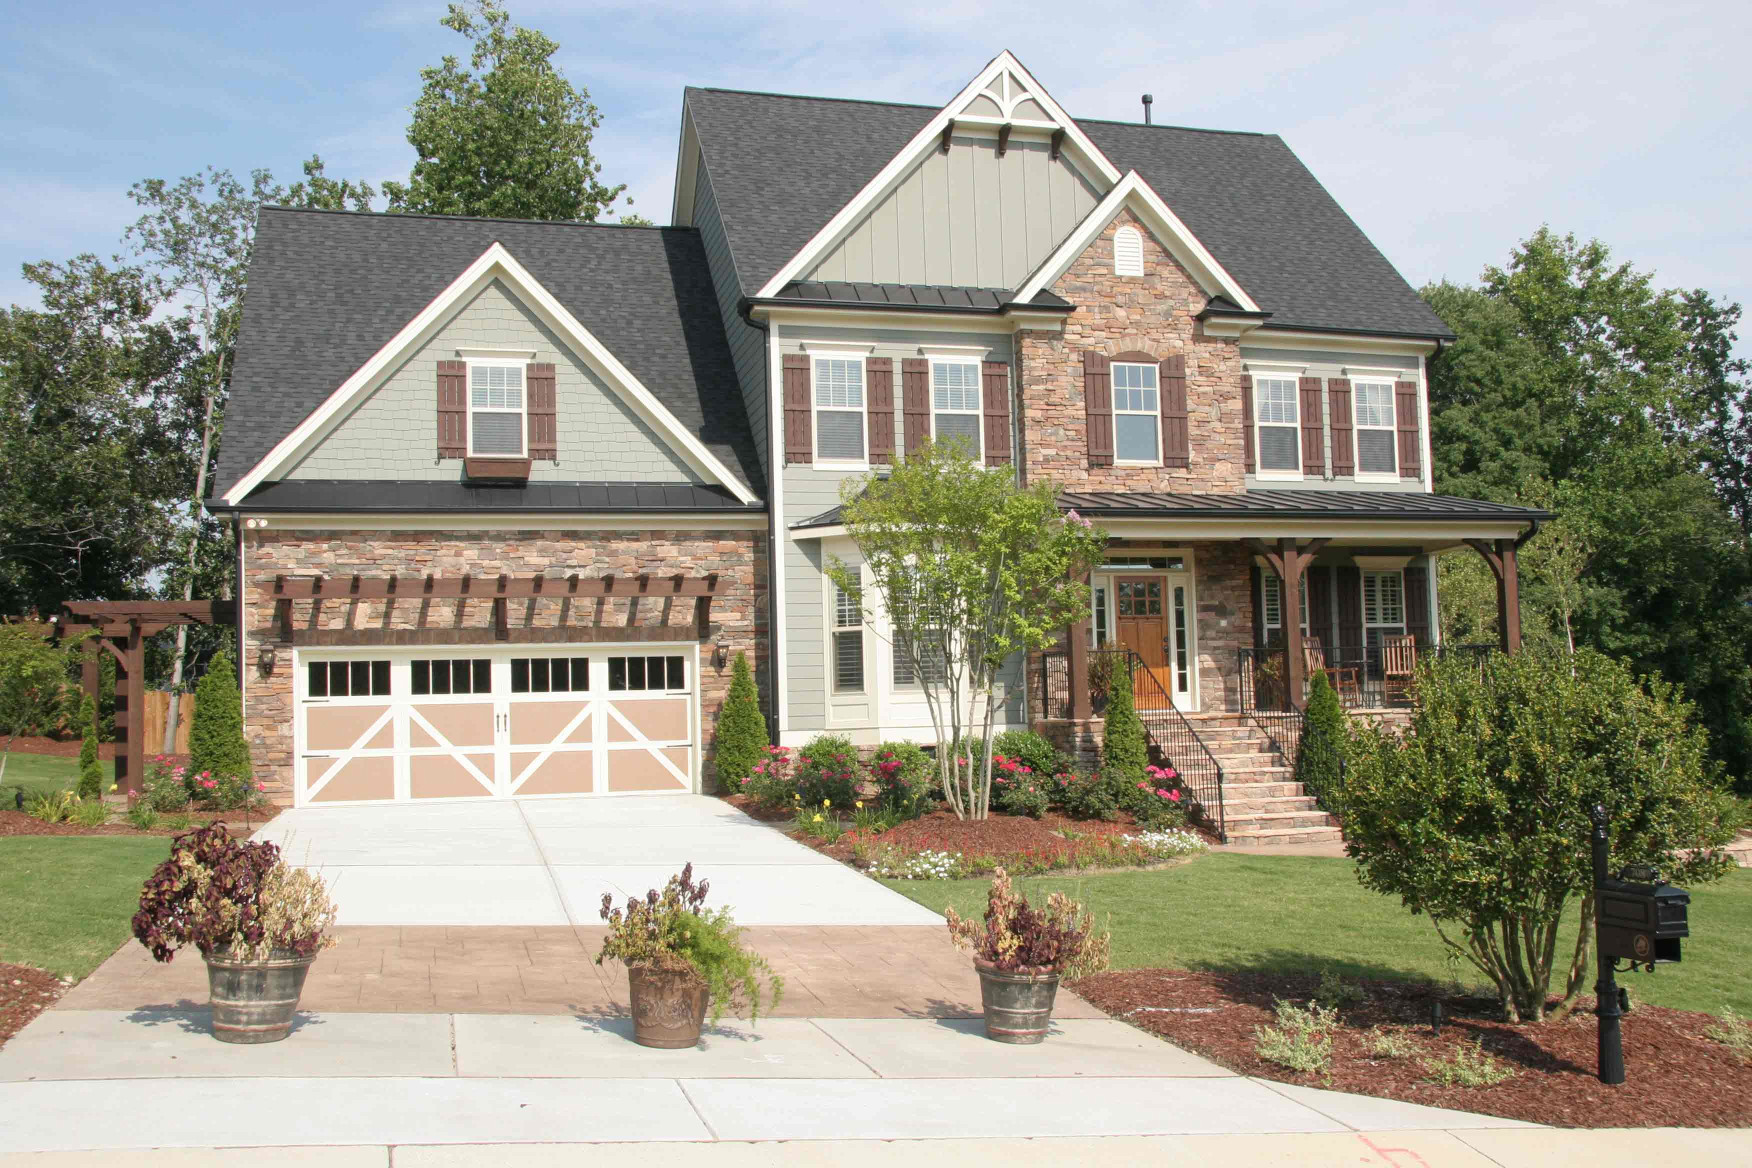 This home features our wood posts, wood braces, wood shutters, wood trellis  and wood arbors.